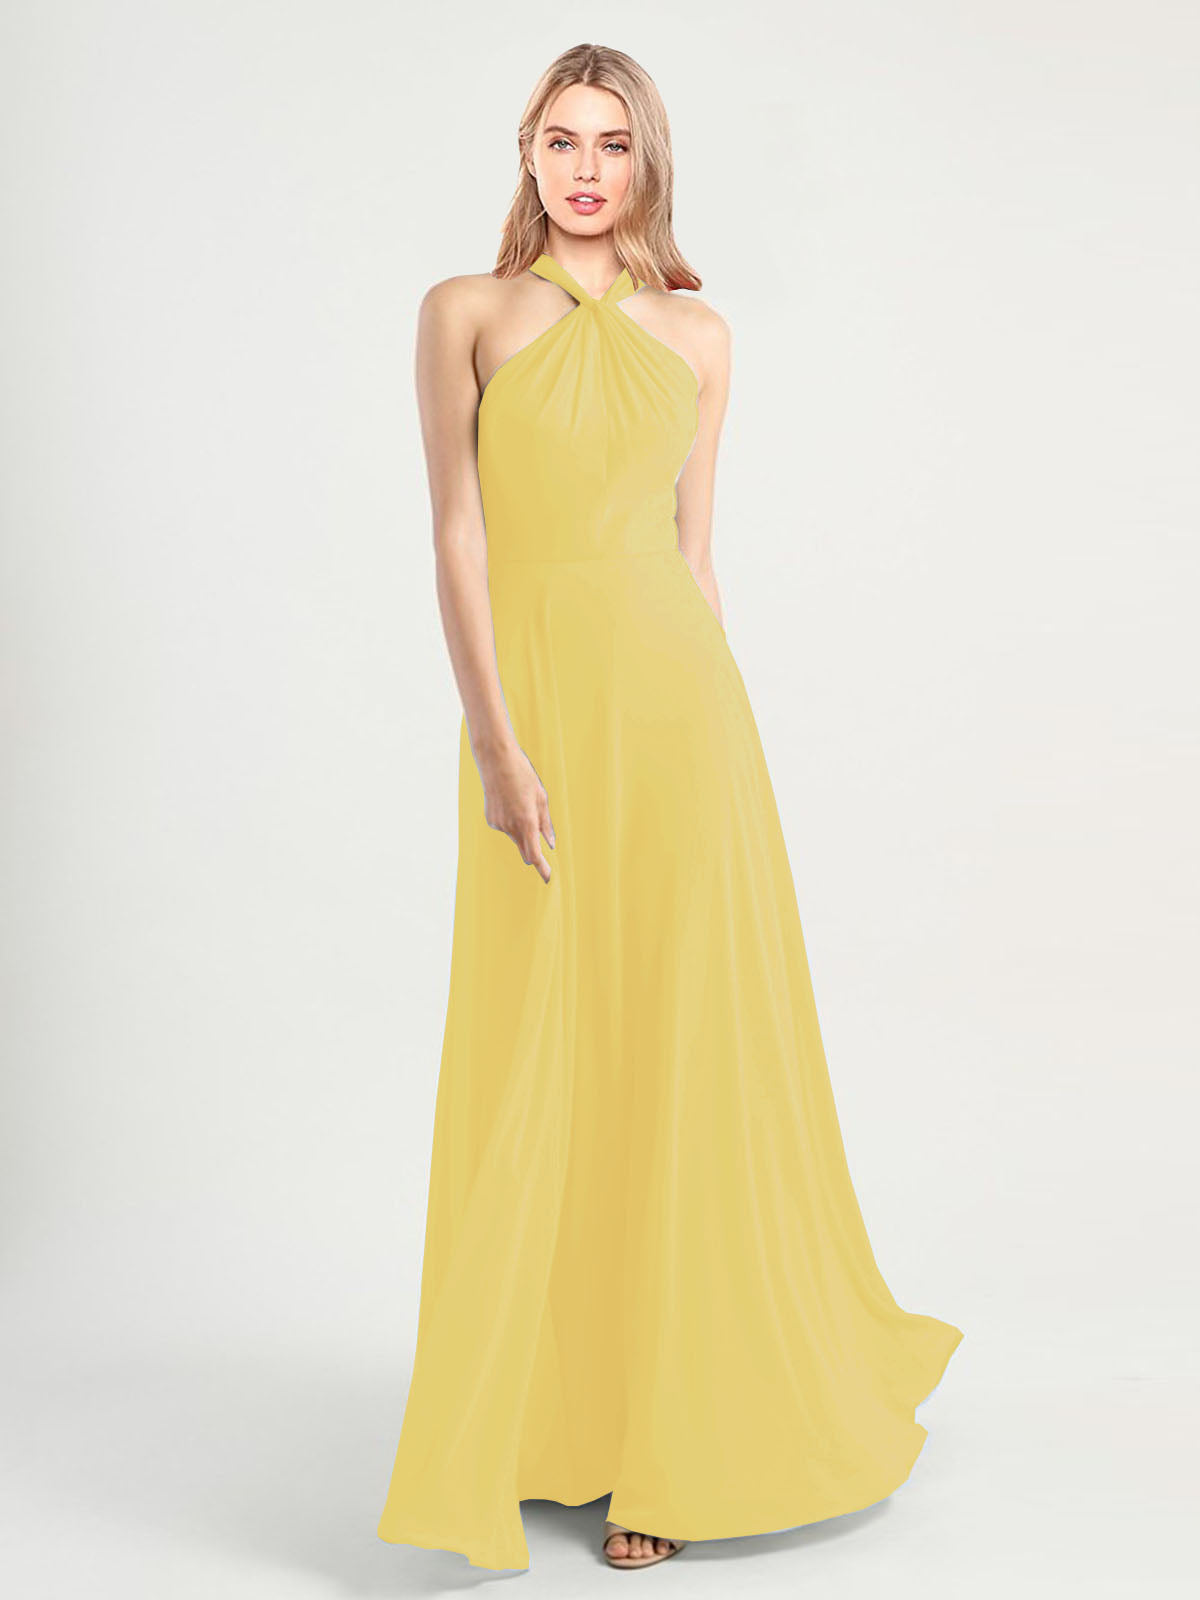 Long A-Line High Neck, Halter Sleeveless Daffodil Chiffon Bridesmaid Dress Yoli